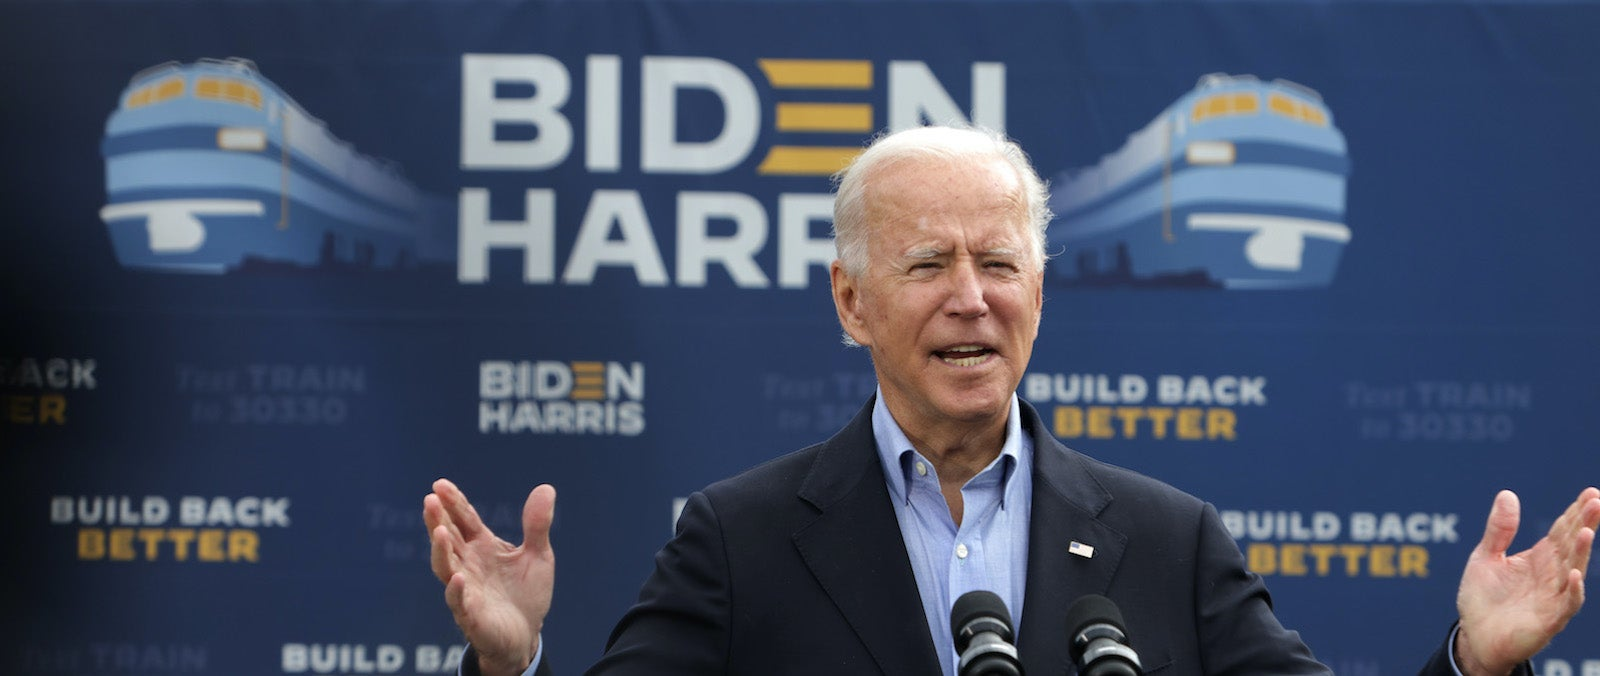 Major changes to travel from the new Biden Administration - cover